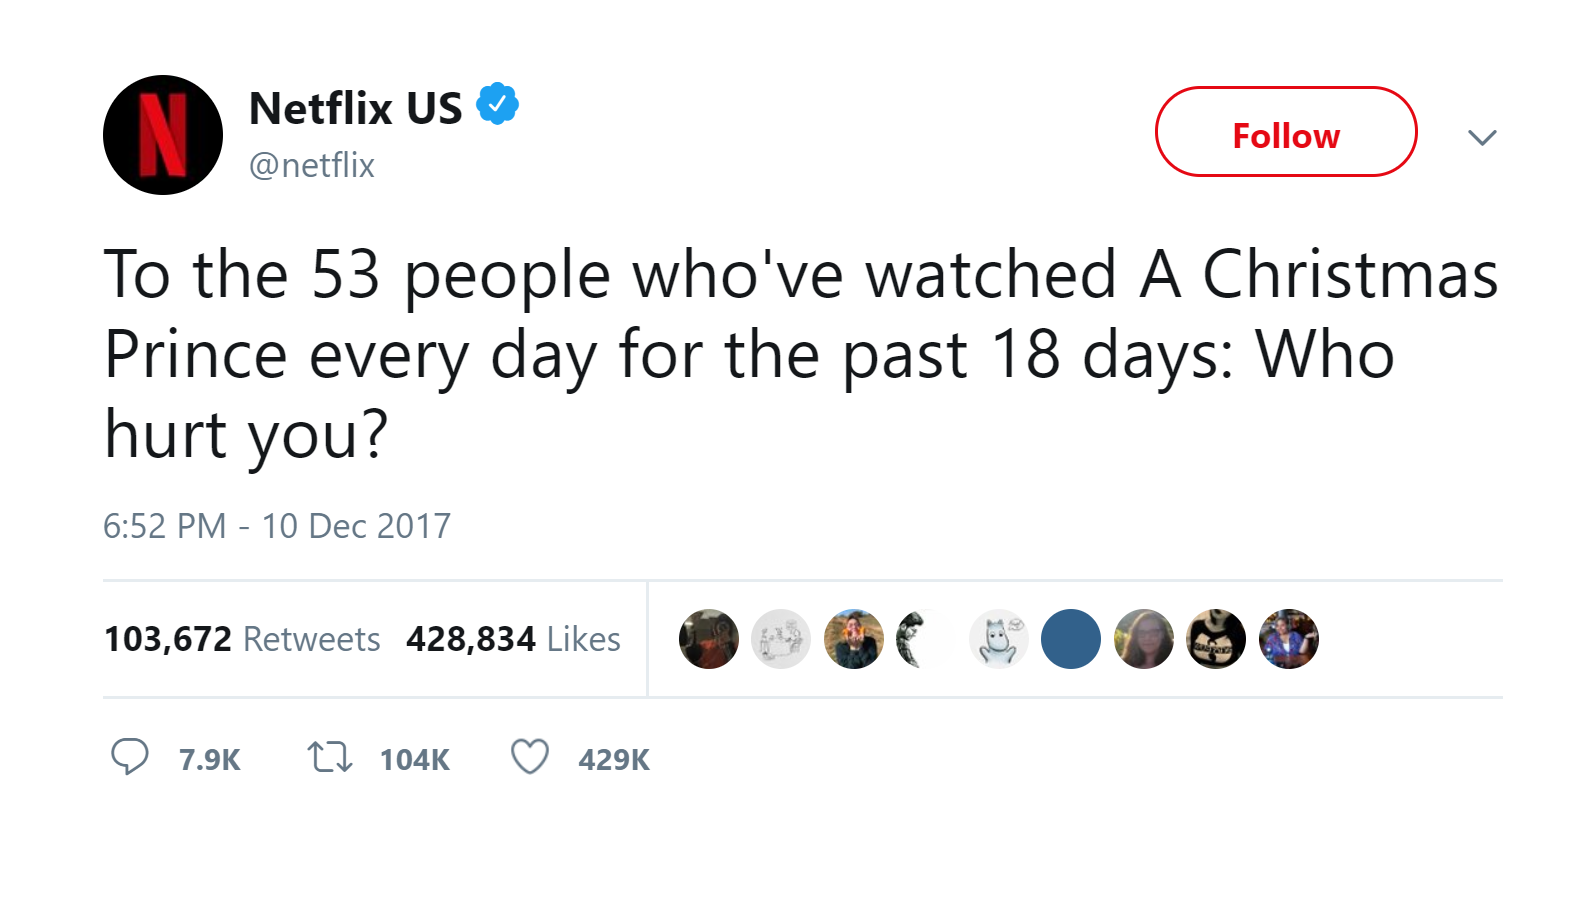 Netflix tweeted about users watching the movie A Christmas Prince 18 days in a row.